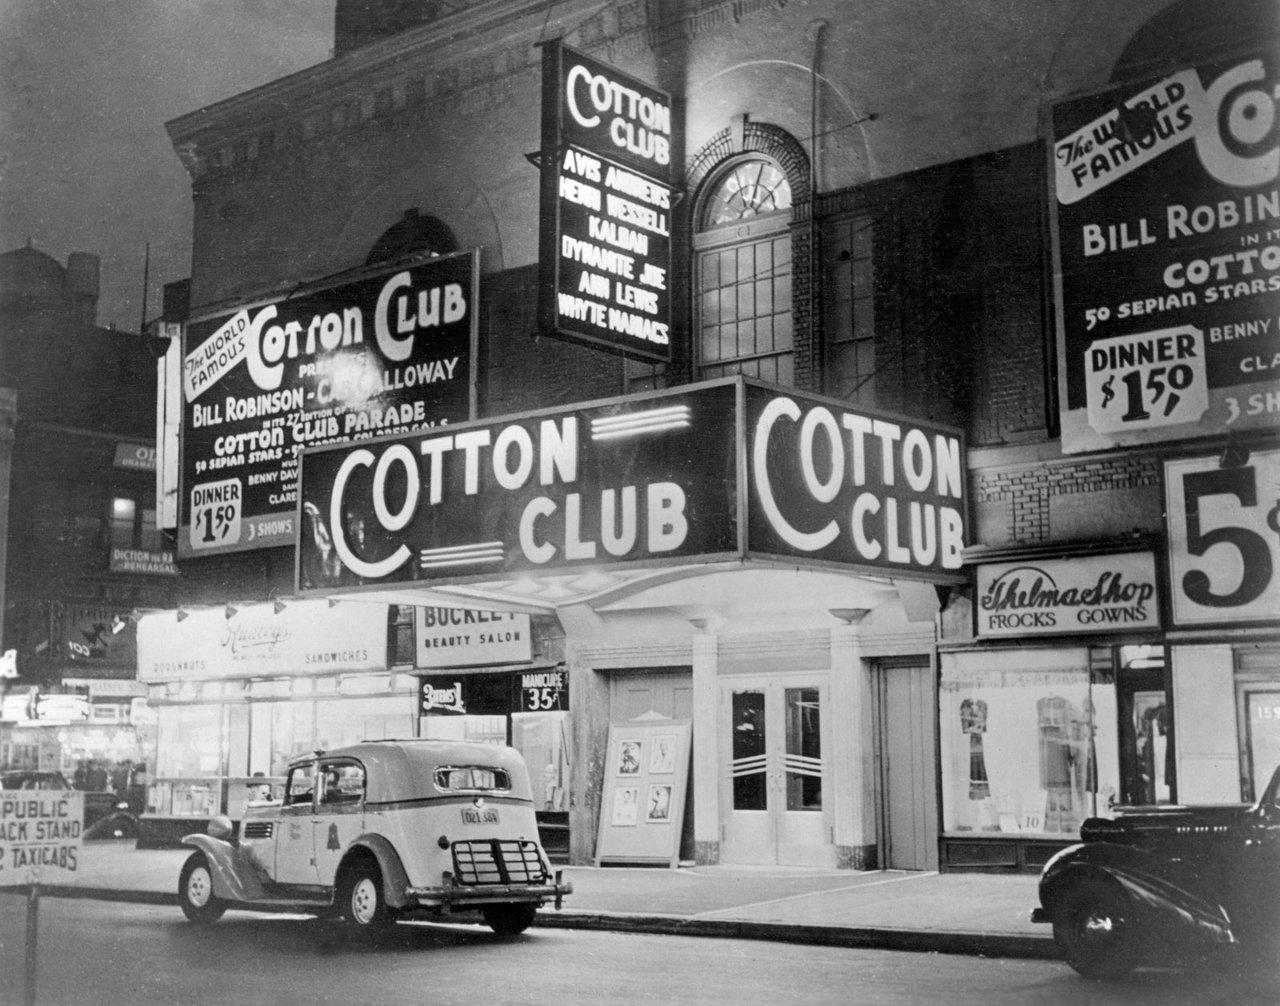 Credit:Frank Driggs Collection/Hulton Archive/Getty Images